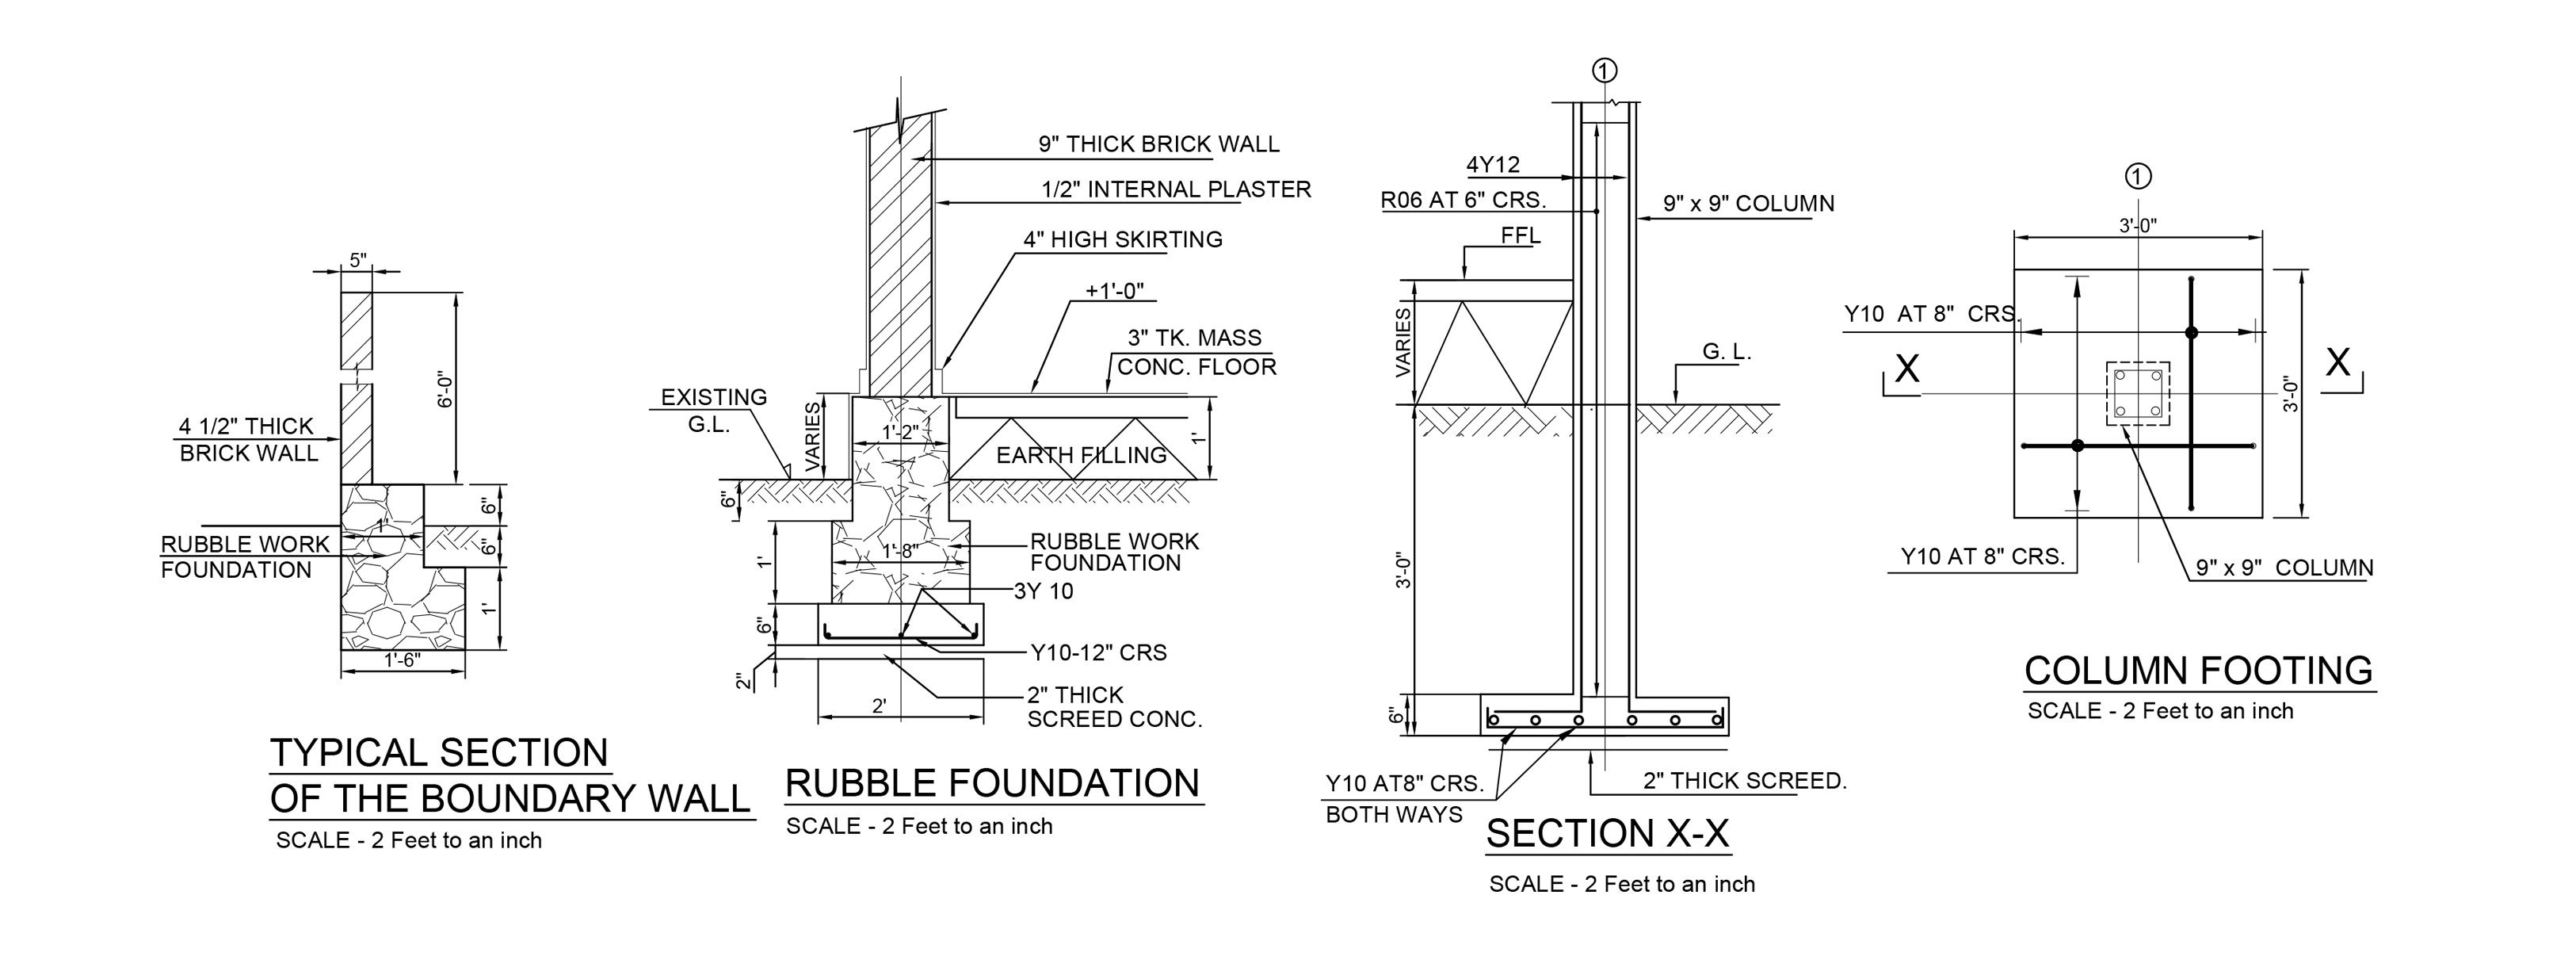 Foundation Footing Details